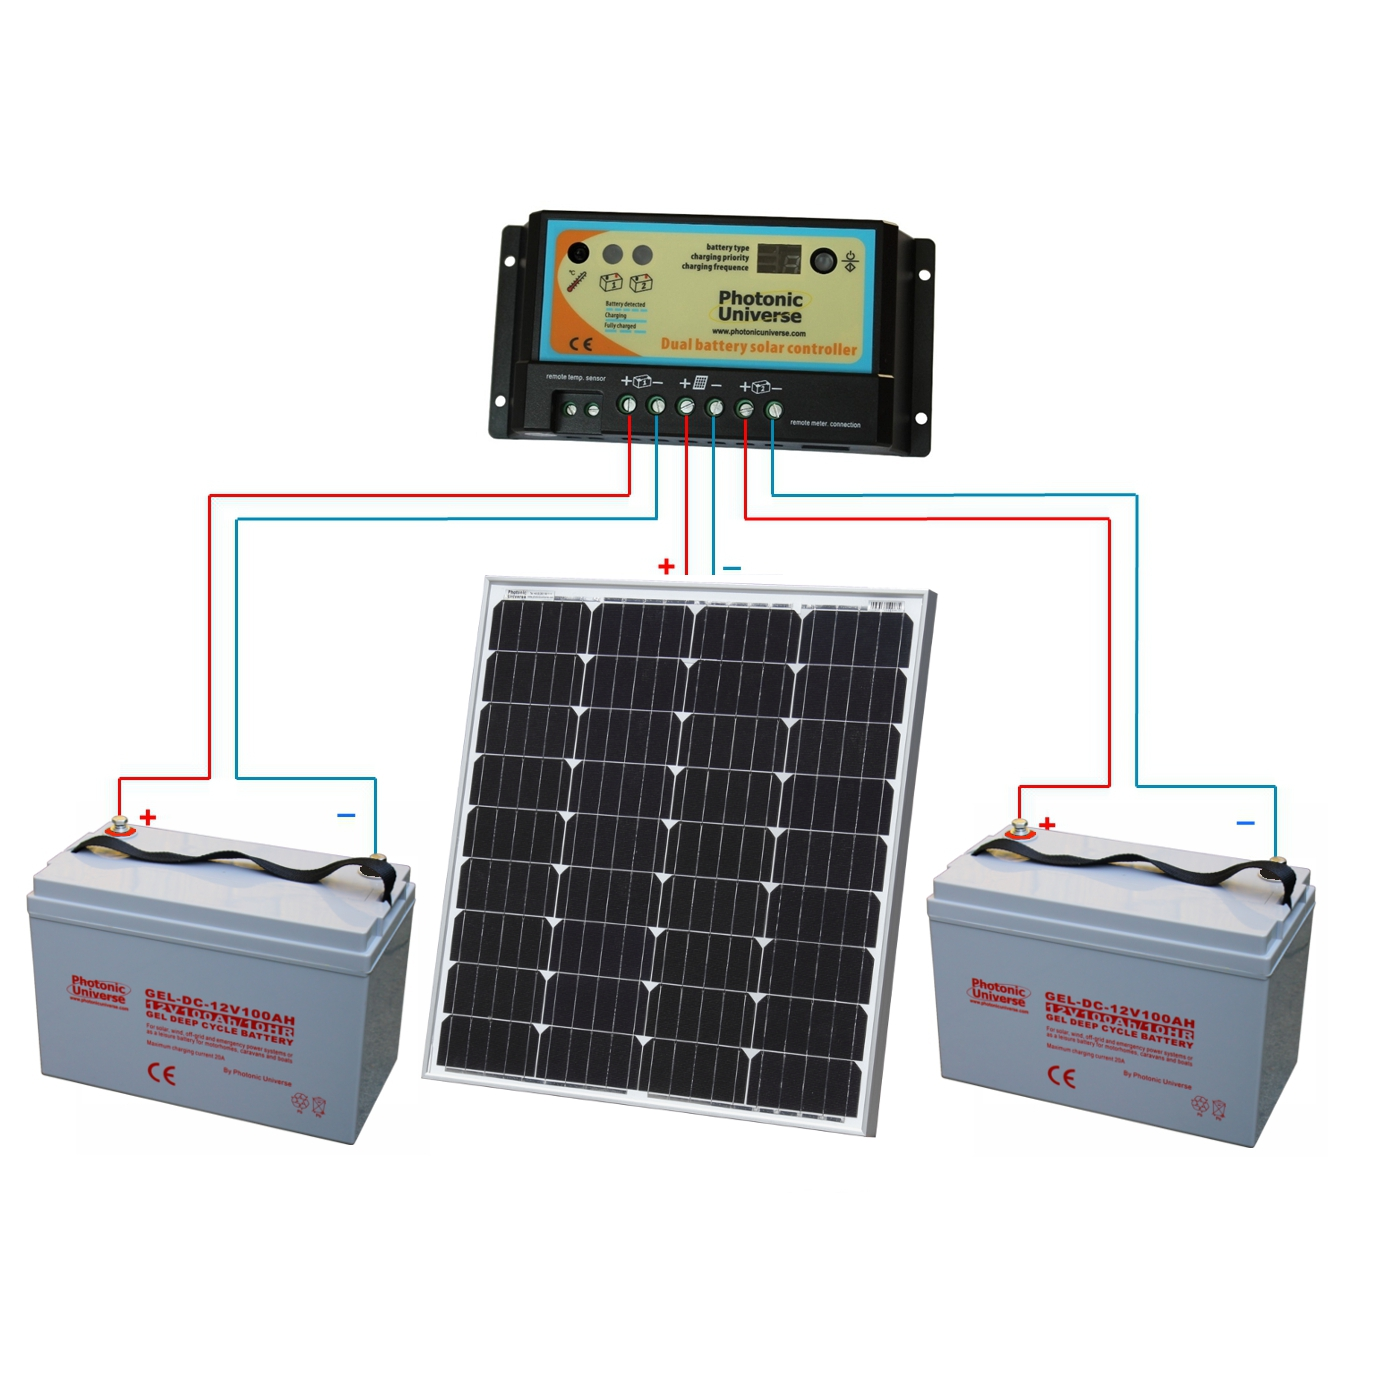 12v solar panels charging kits for caravans motorhomes boats connection diagram for 80w 12v photonic universe dual battery solar charging kit asfbconference2016 Image collections